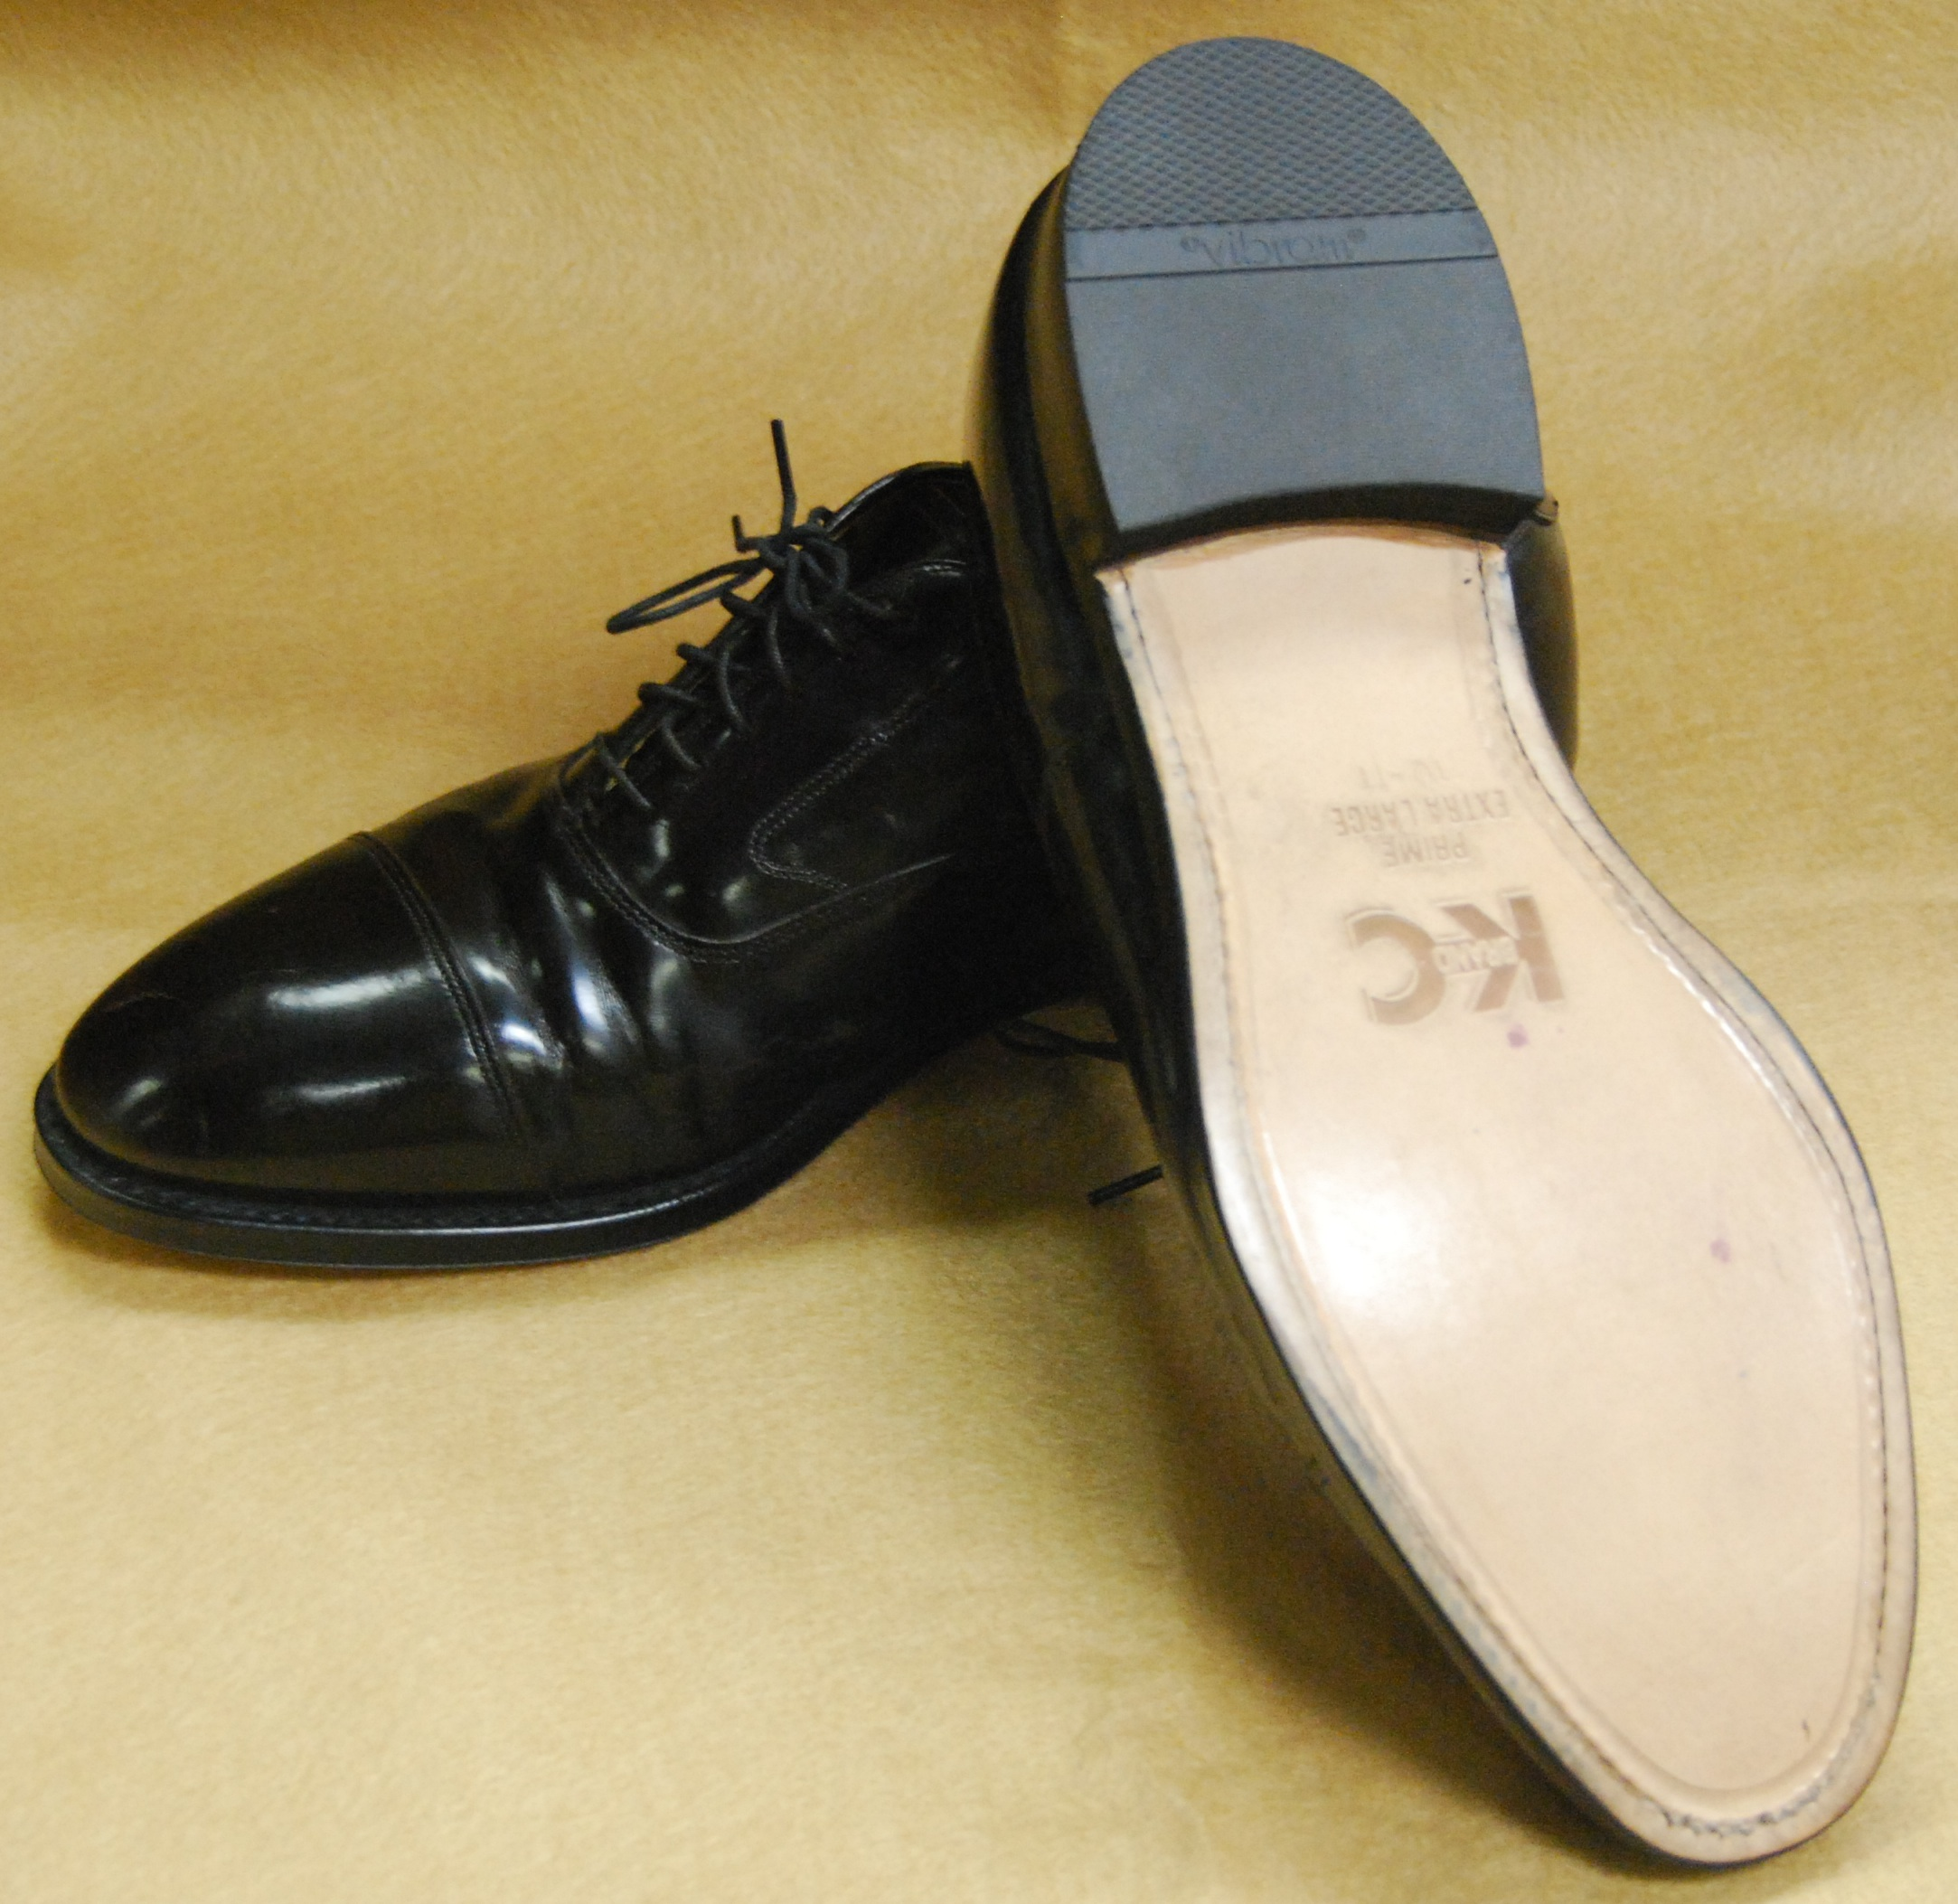 Where To Buy Material To Resole Shoe